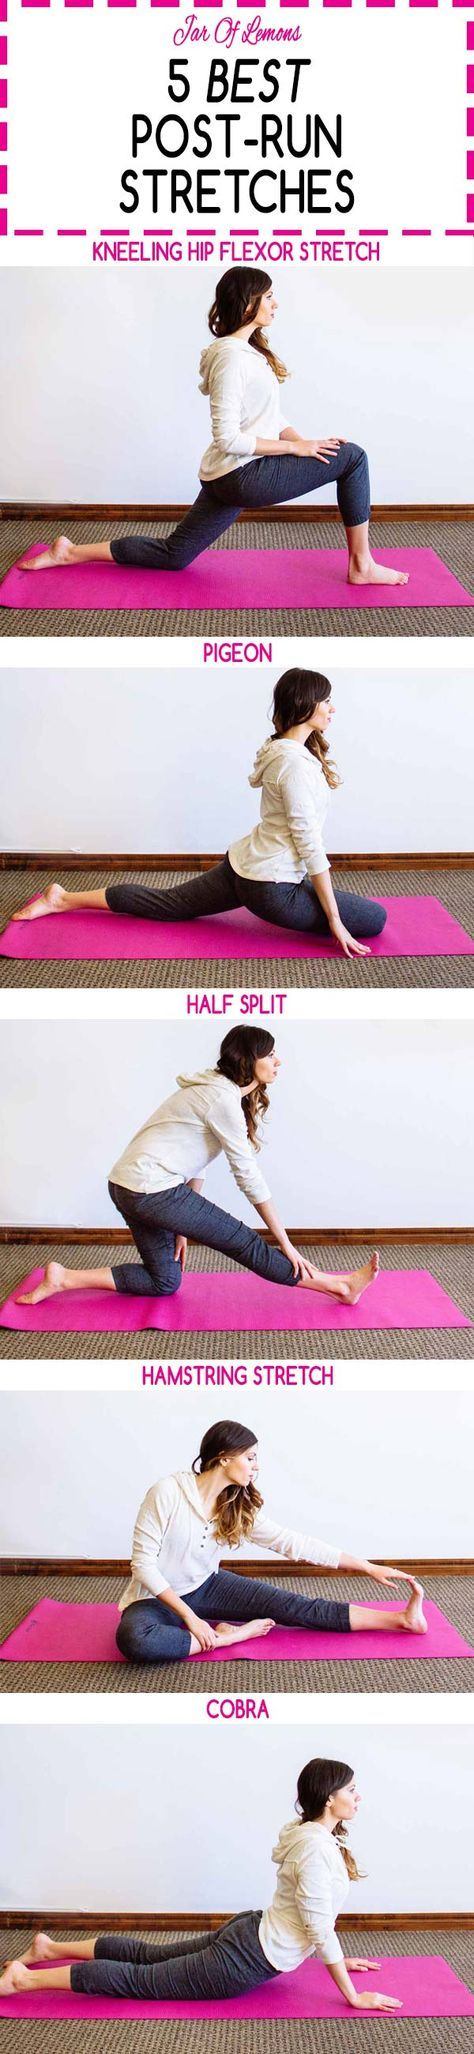 5 Best Post-Run Stretches! Whether you're running long distances or short sprints, these stretches are great for after a workout! @prAna